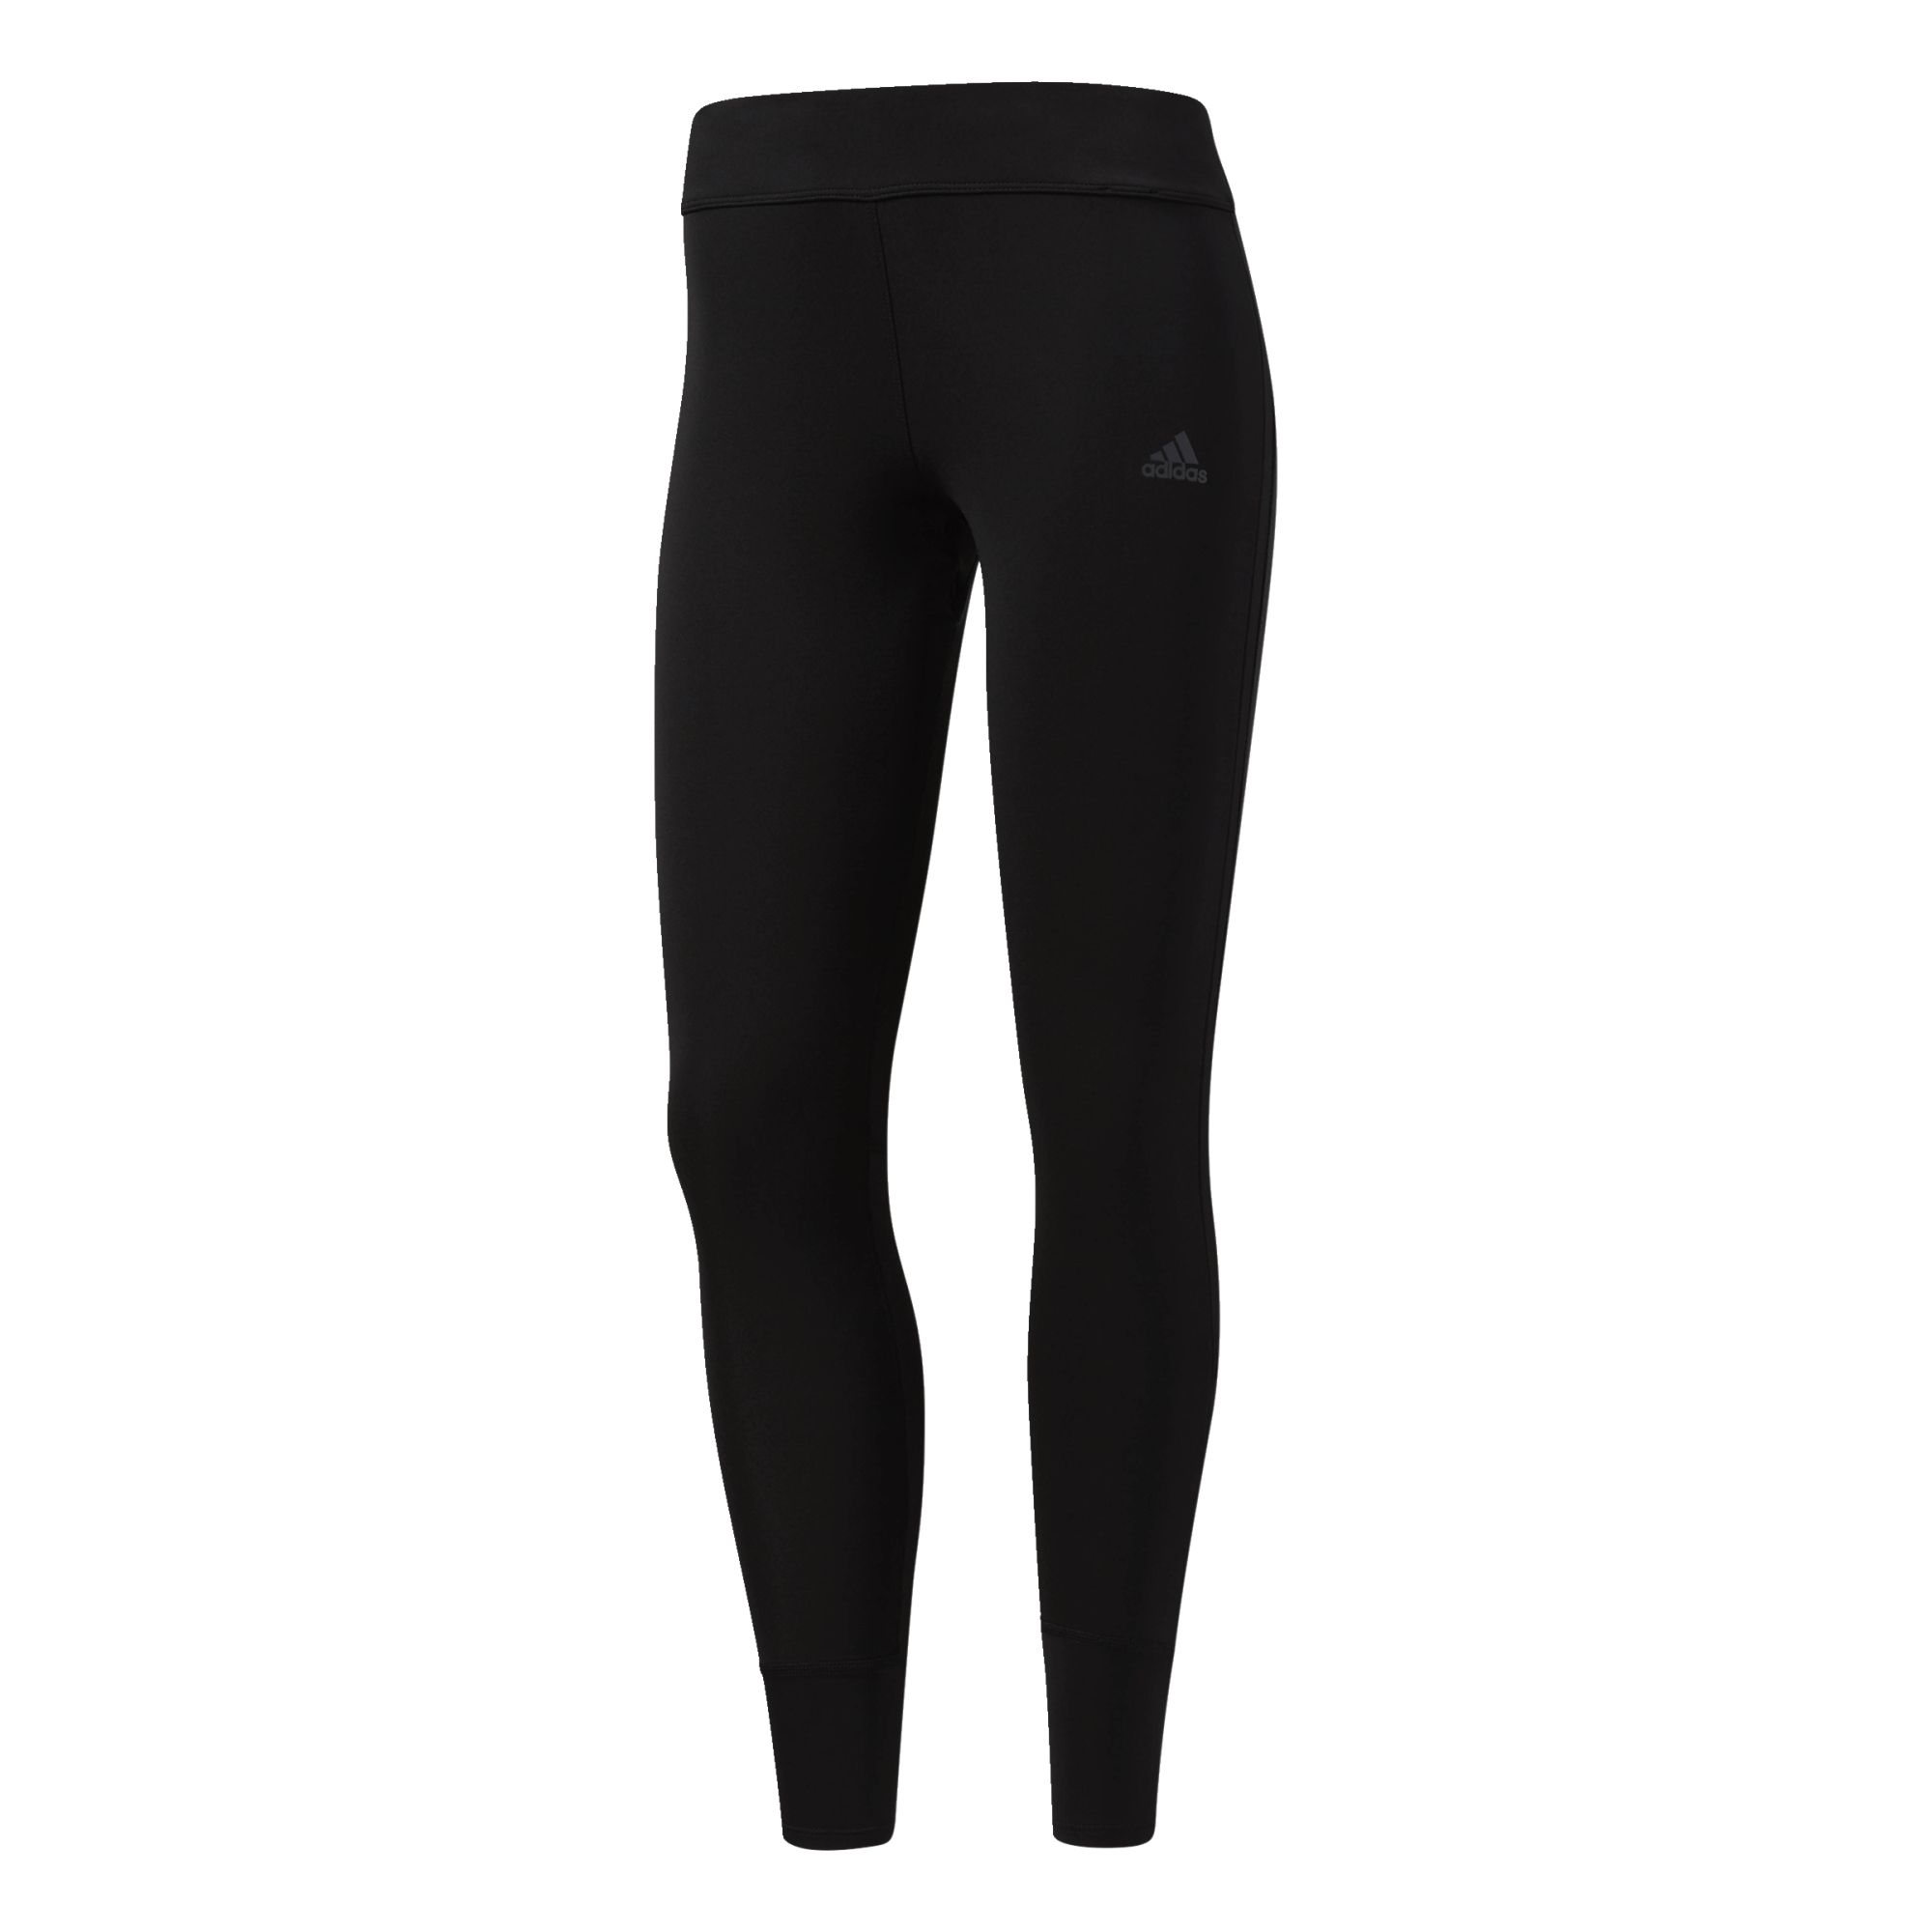 f0a0238b5af Wiggle | adidas Women's Response Long Tight | Tights